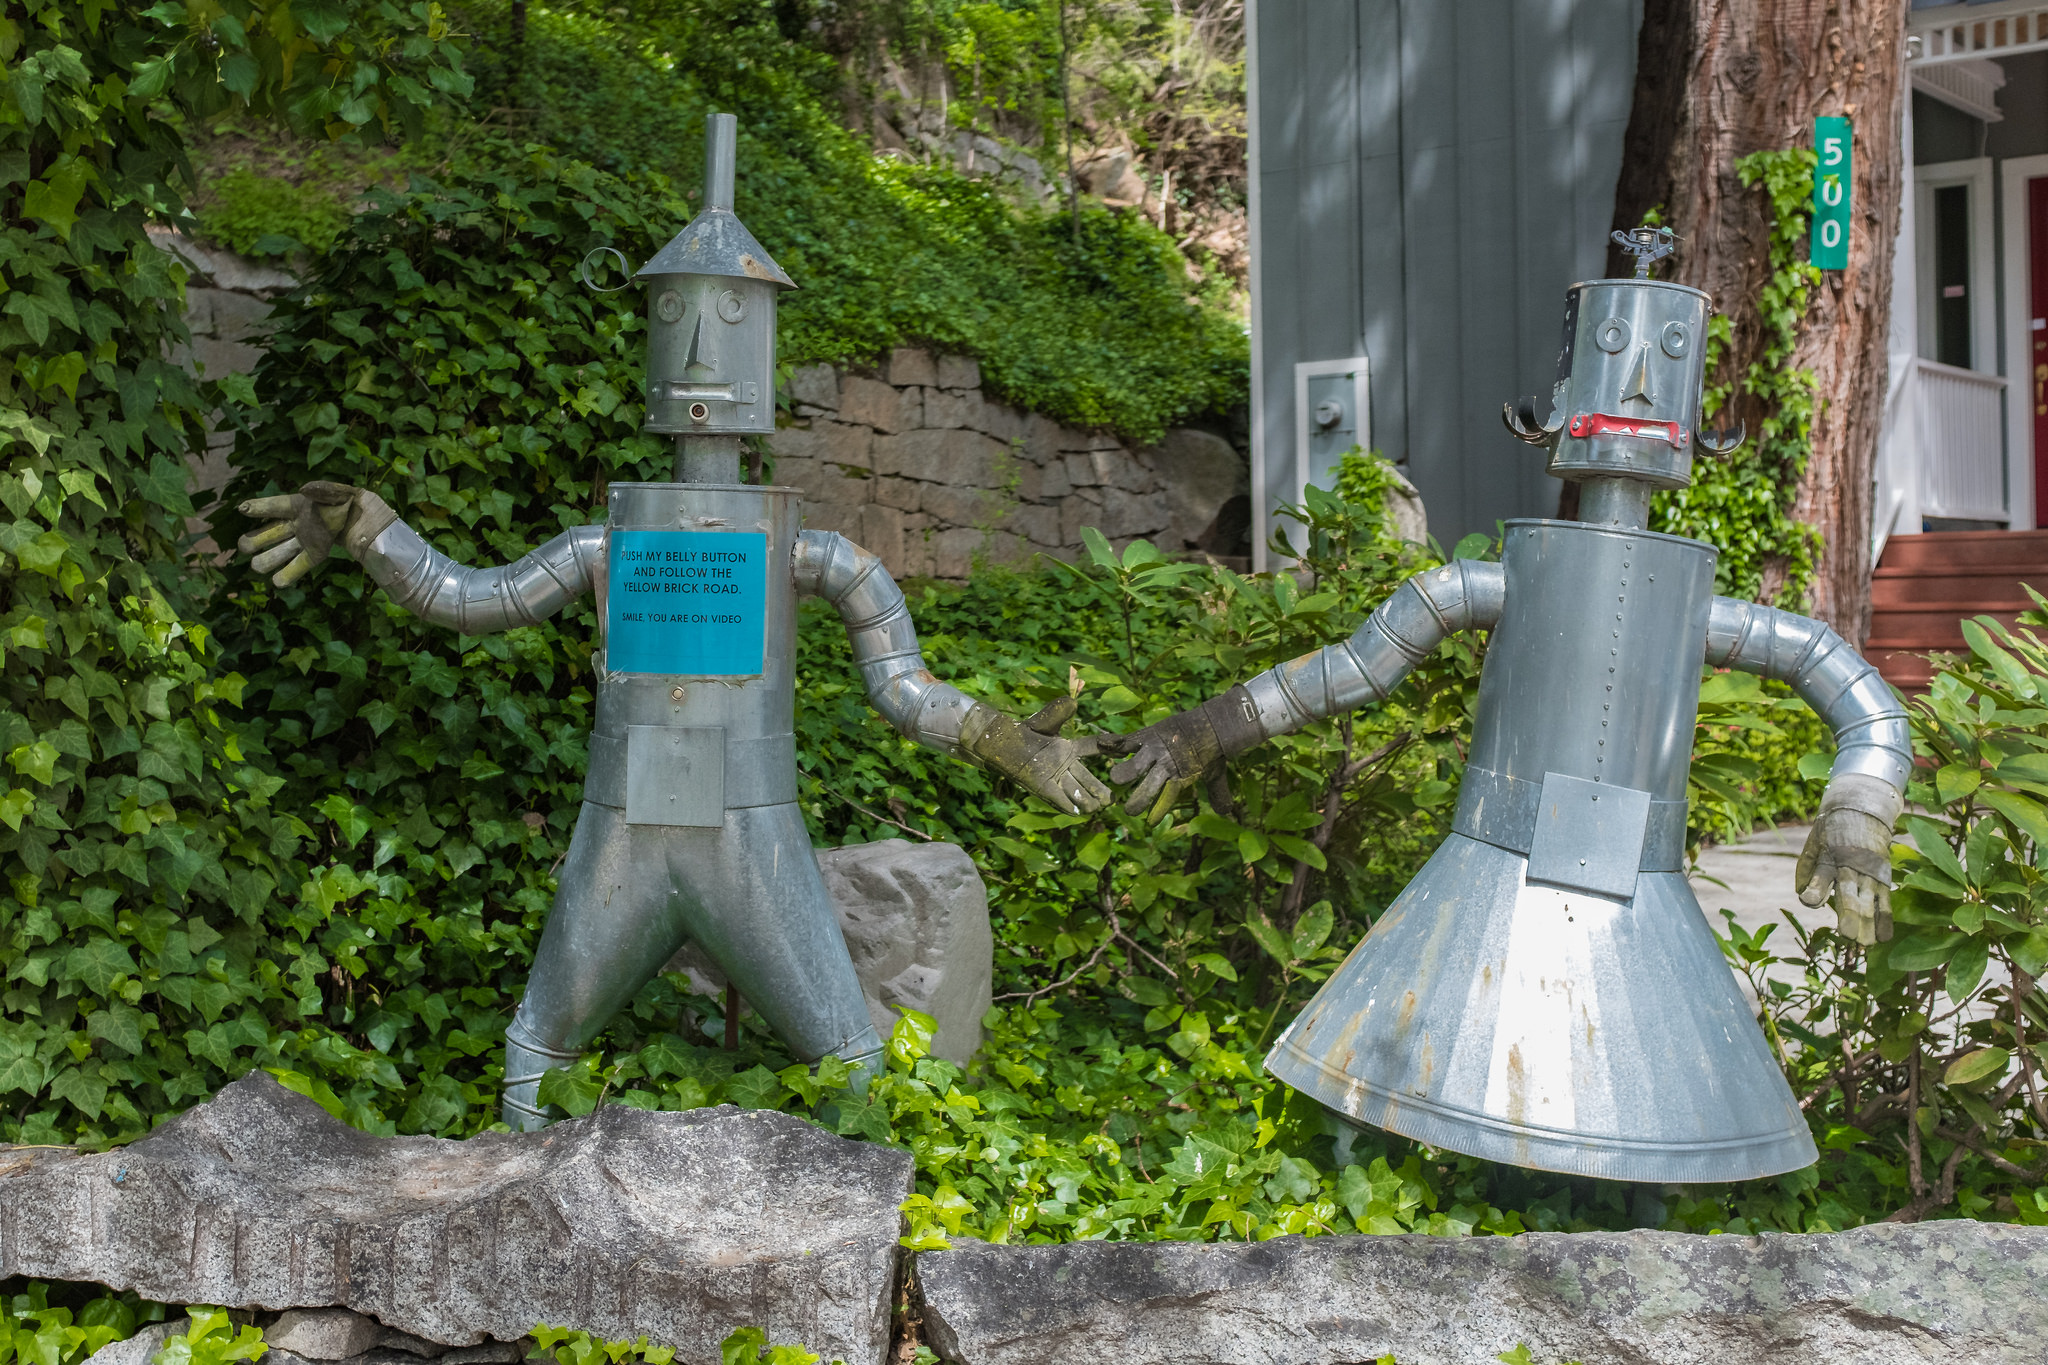 This Tin Man and Tin Woman in Nevada City play Wizard of Oz music when you push his bellybutton.